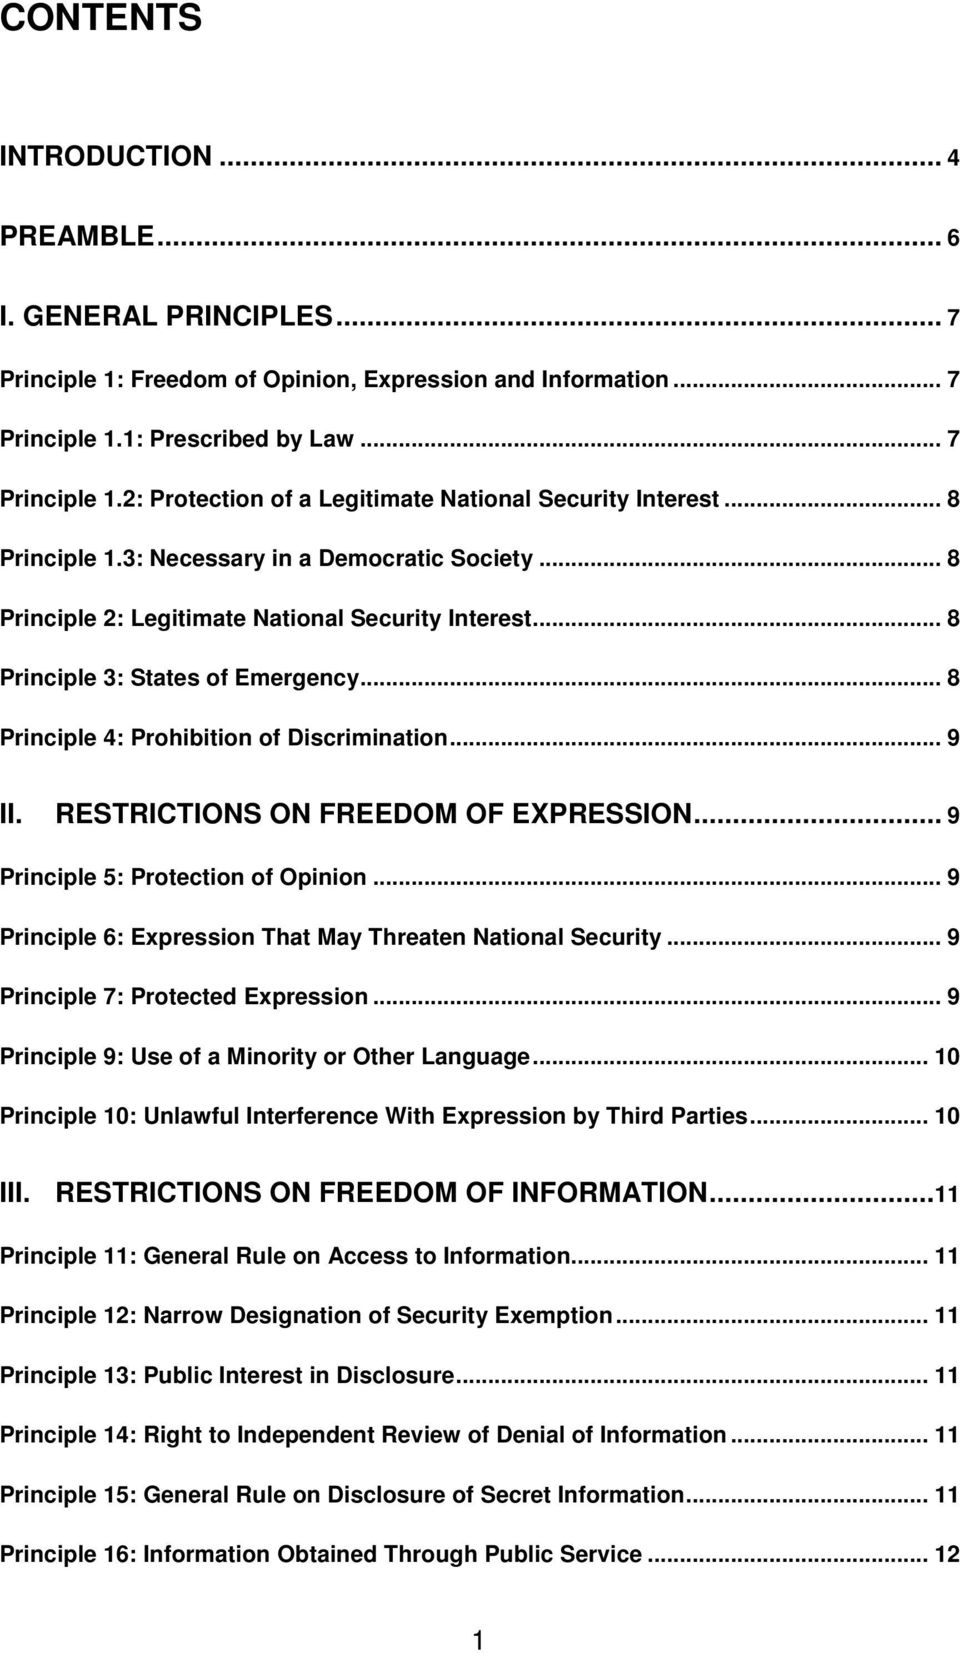 .. 9 II. RESTRICTIONS ON FREEDOM OF EXPRESSION... 9 Principle 5: Protection of Opinion... 9 Principle 6: Expression That May Threaten National Security... 9 Principle 7: Protected Expression.